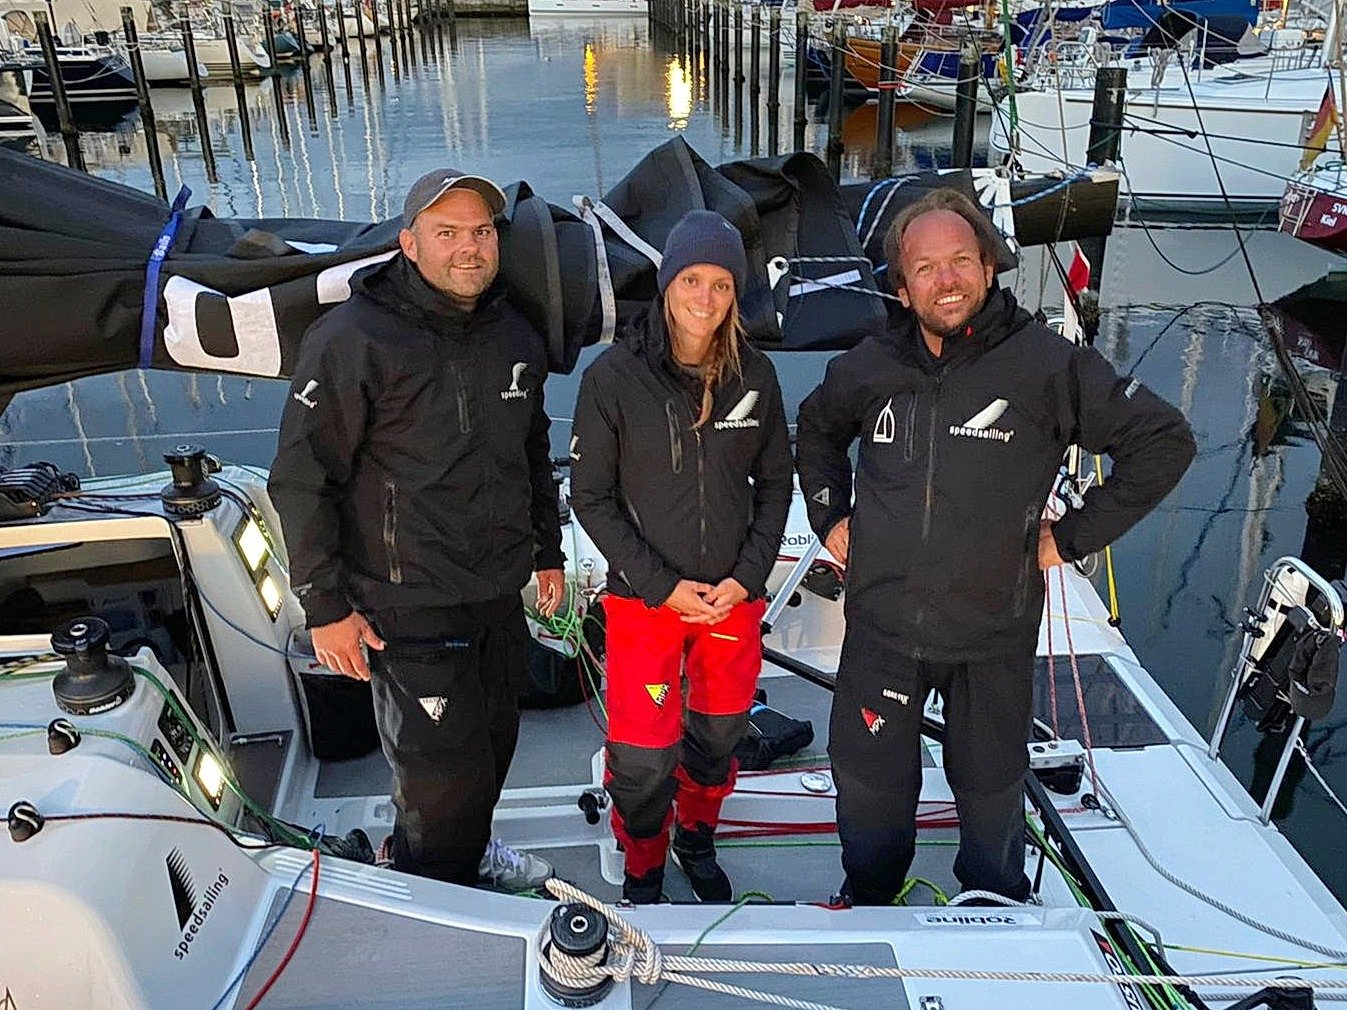 Team Speedsailing mixed offshore youth